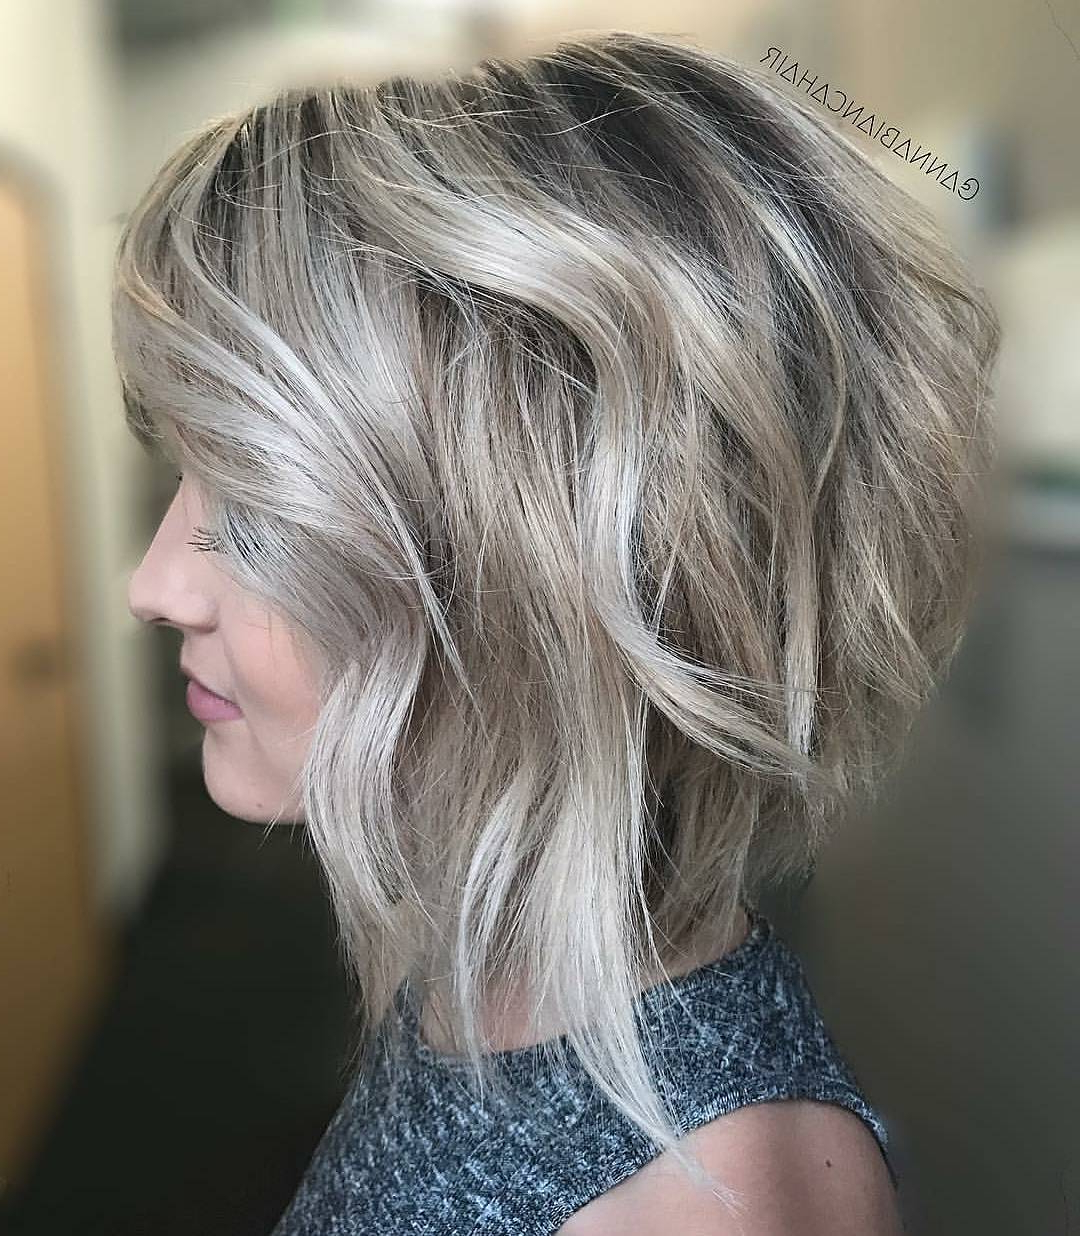 10 Messy Hairstyles For Short Hair – Quick Chic! Women Short Haircut In Short Ruffled Hairstyles With Blonde Highlights (View 3 of 20)